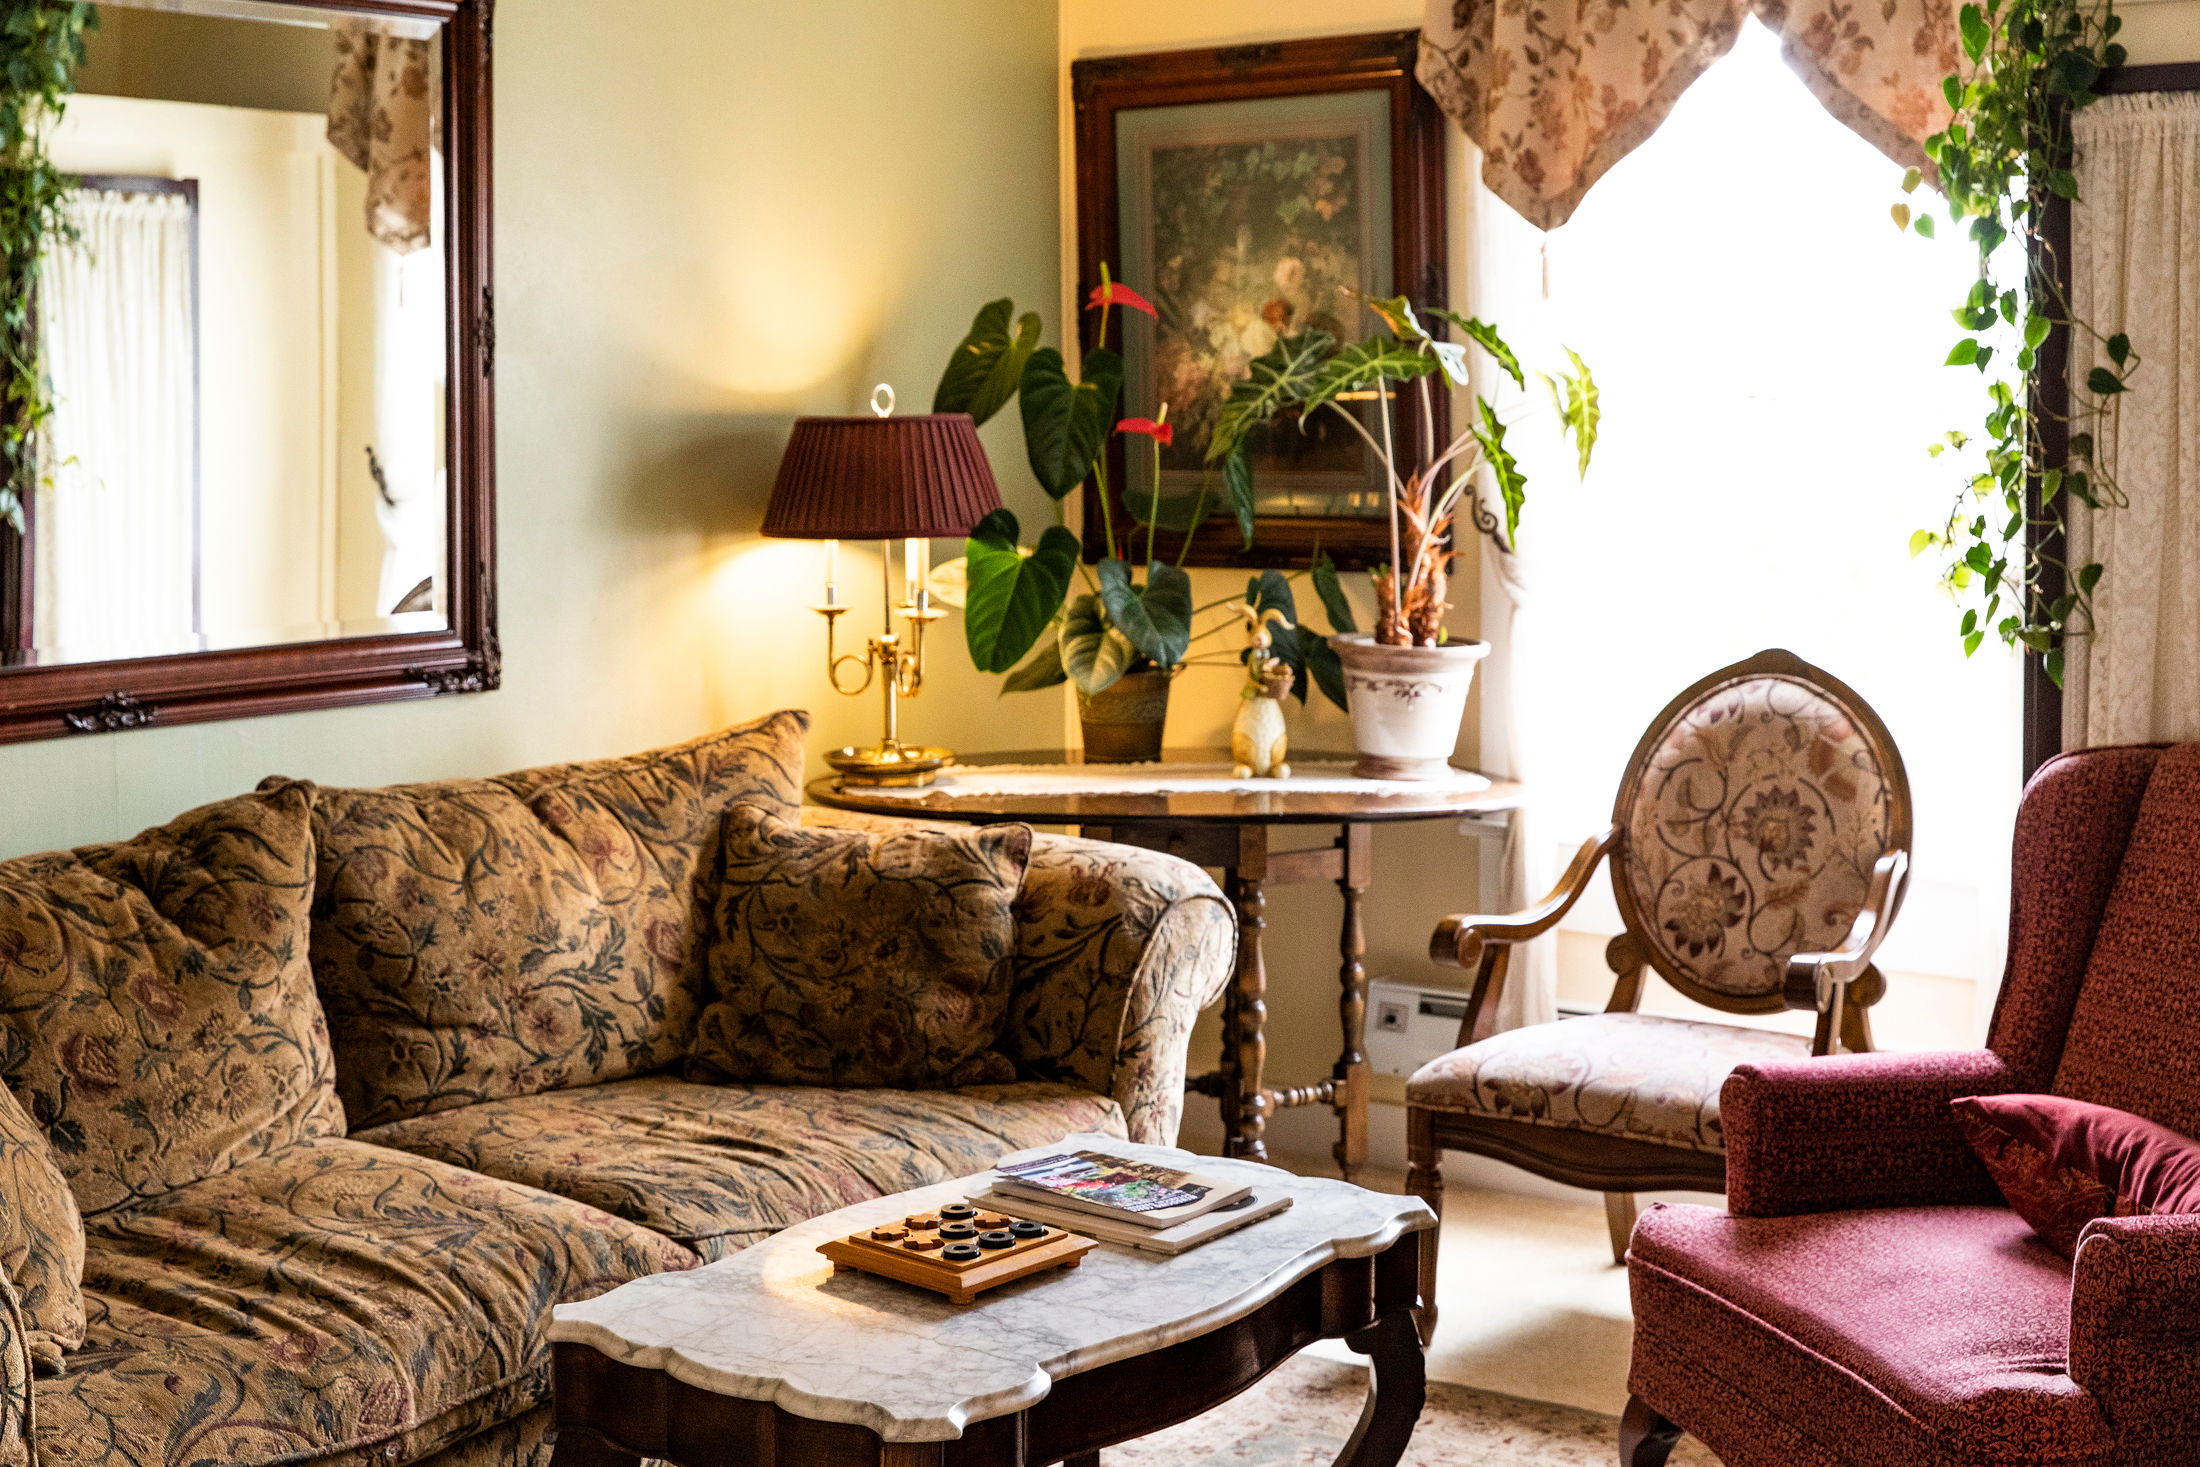 The charming parlor at The Headlands Inn Mendocino B&B